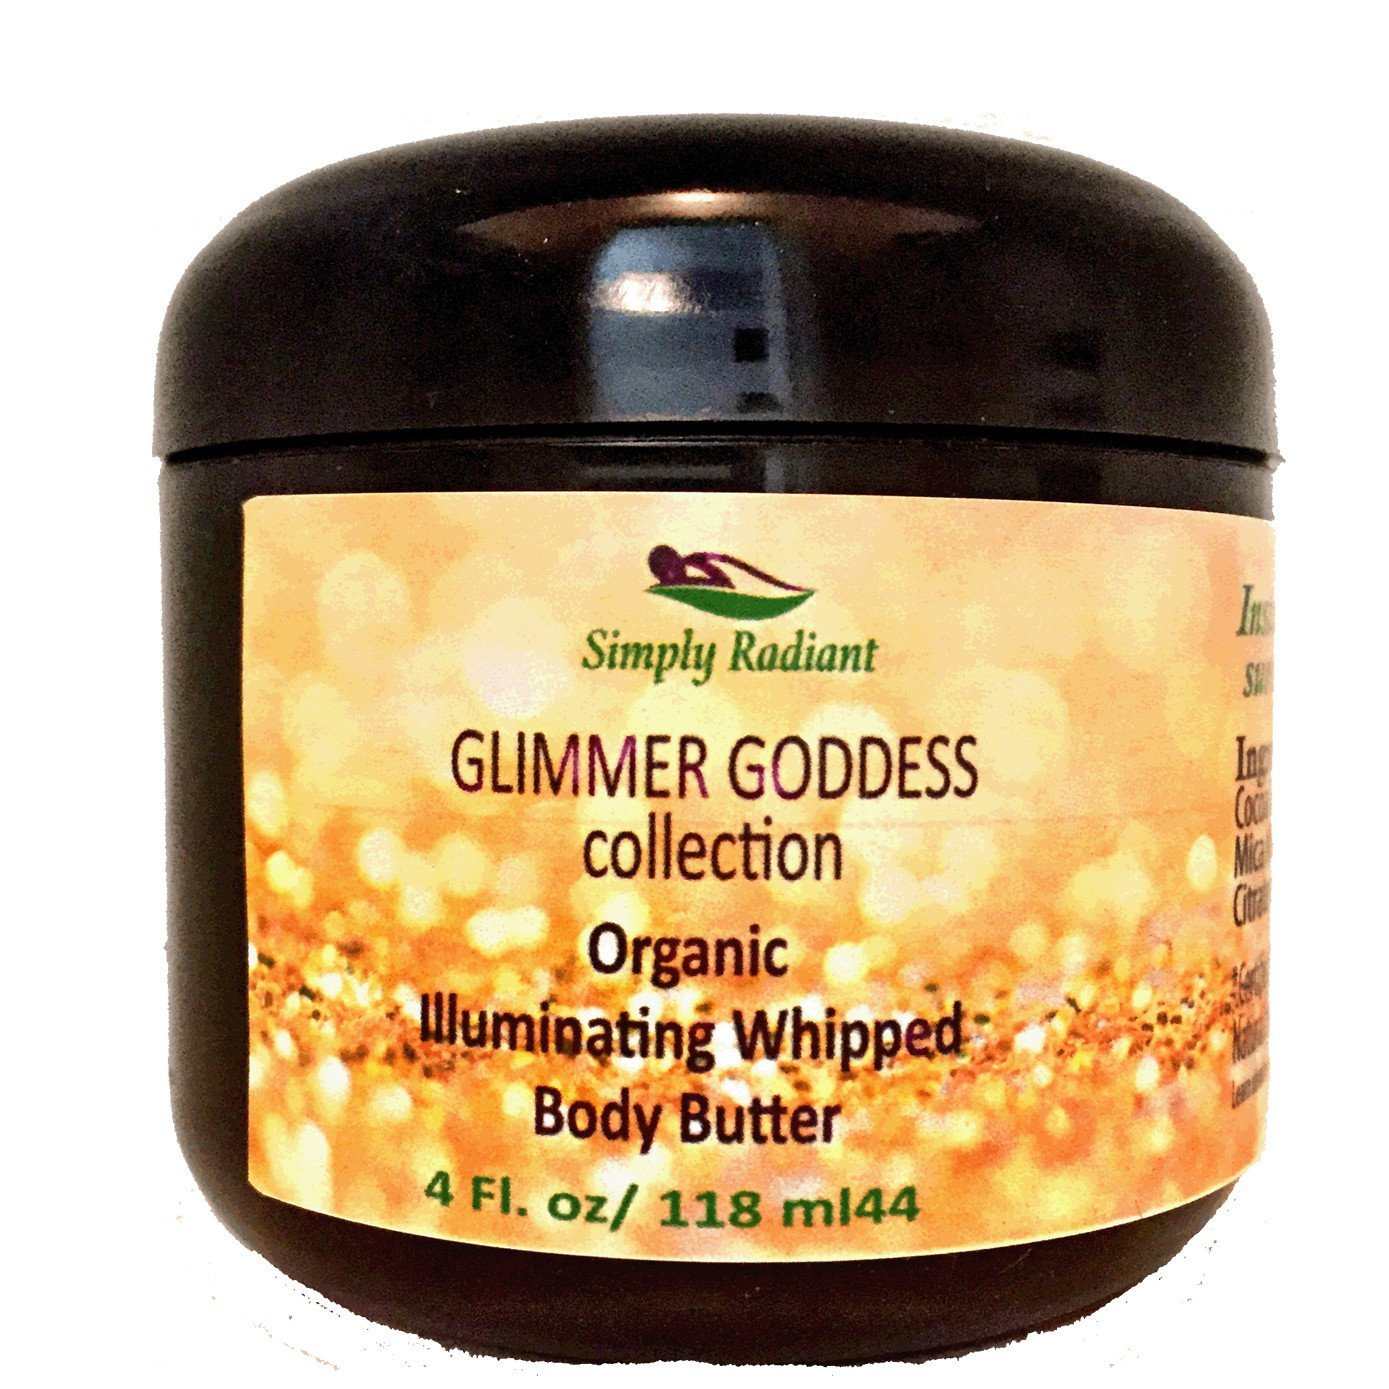 Organic Gold Body Shimmer Whipped Body Butter - Sexy Sparkle For Natural Skin Radiance - Chemical Free Shimmering Moisturizer - Glimmer Goddess by Glimmer Goddess